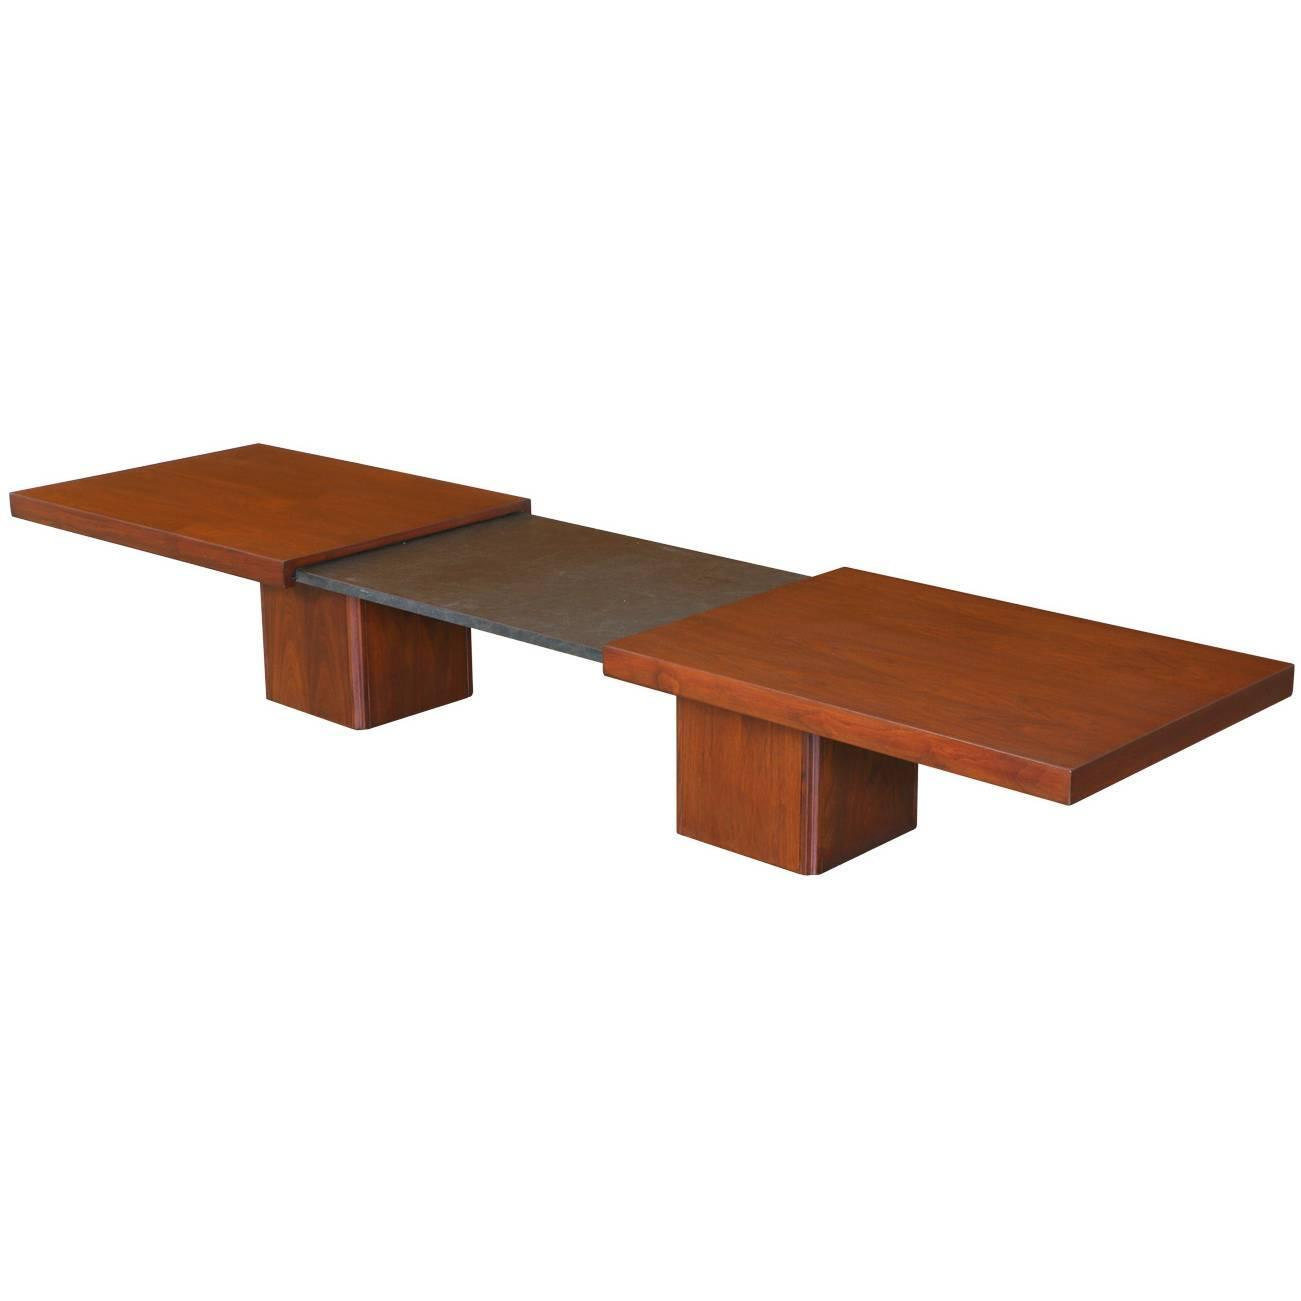 Early John Keal Expanding Coffee Table For Brown Saltman At 1stdibs